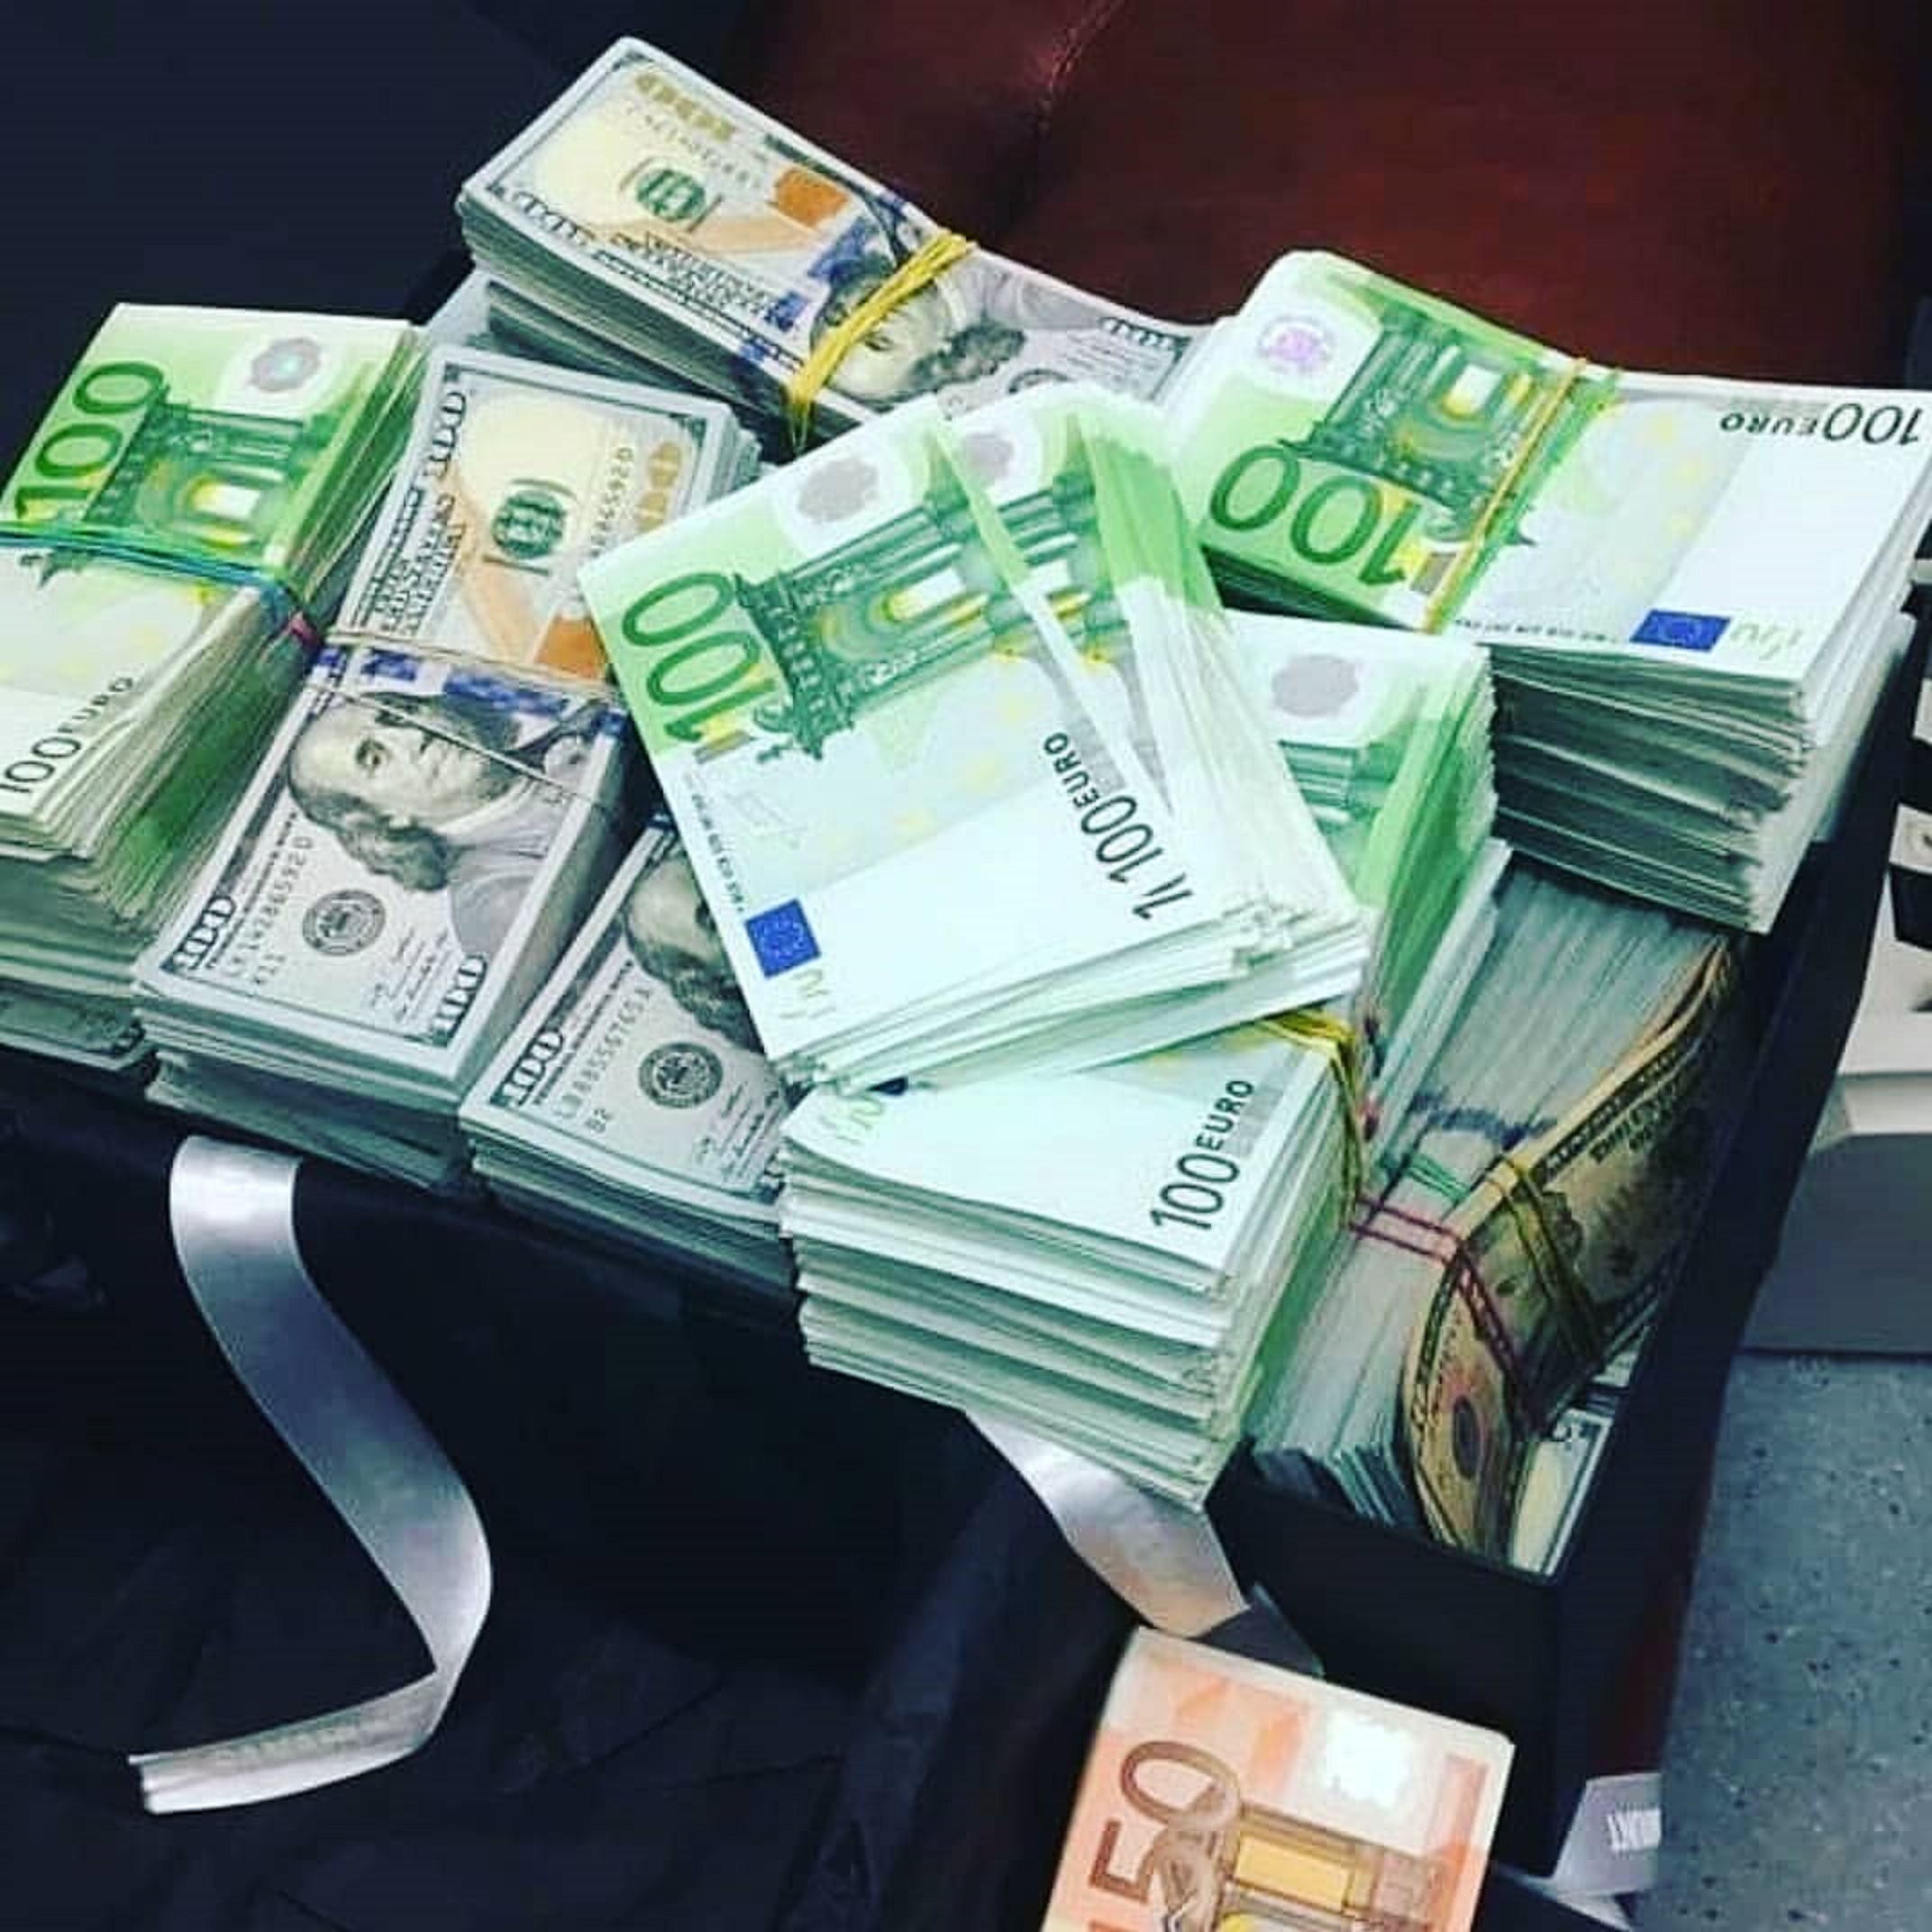 Online Best Quality Fake Money, Dollars, euros, Pounds